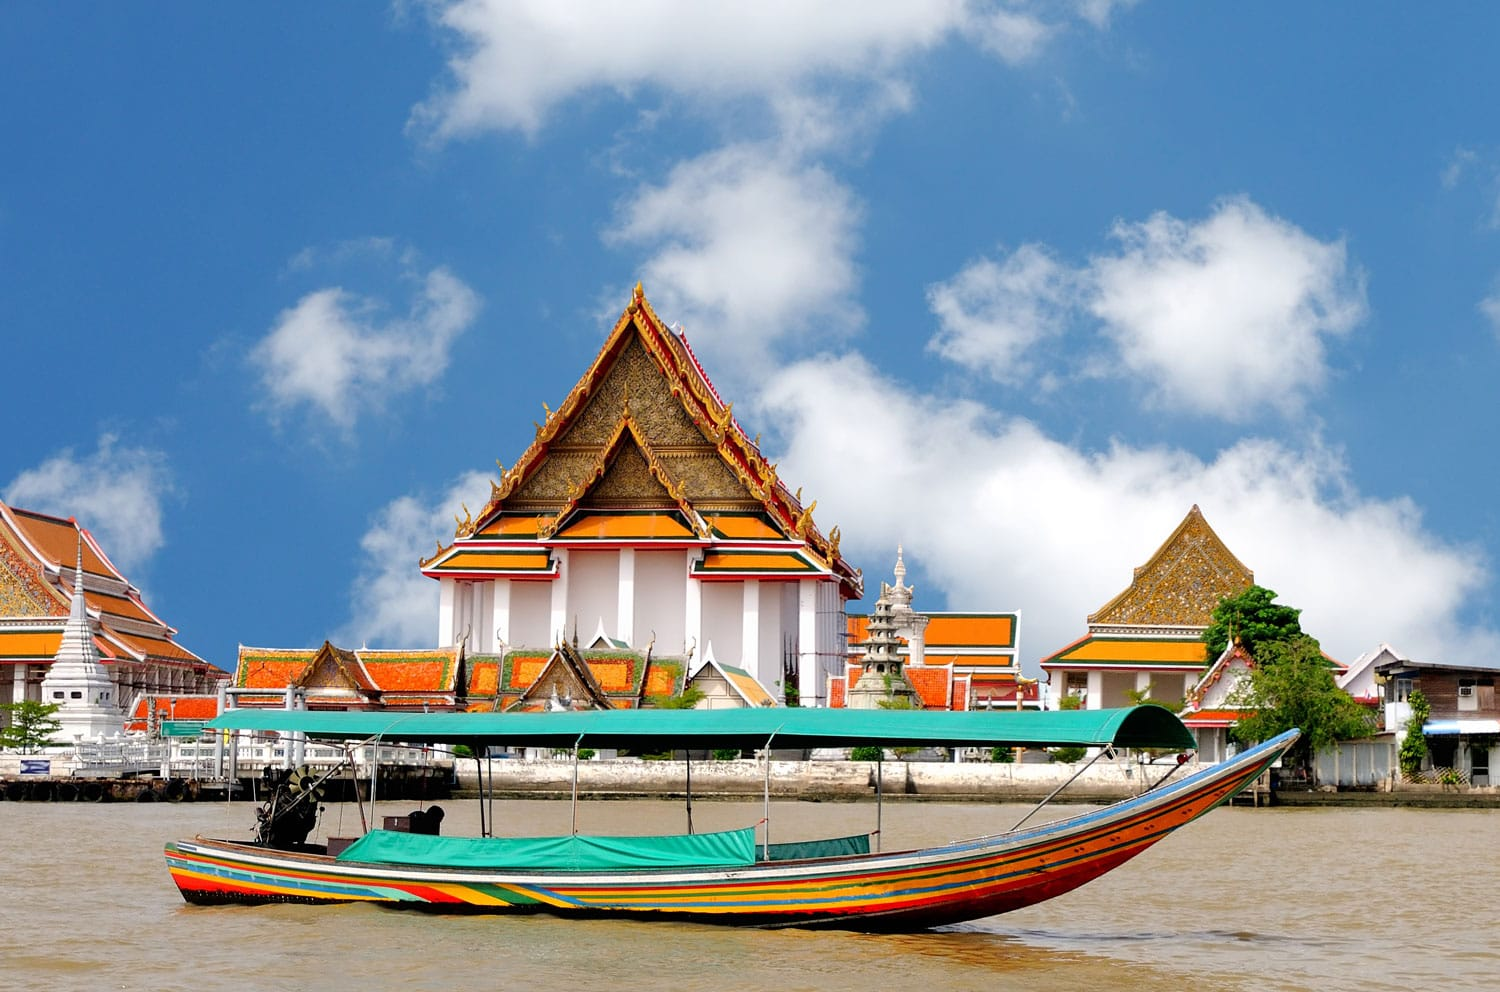 Boat on the river Chao Phraya, Bangkok, Thailand